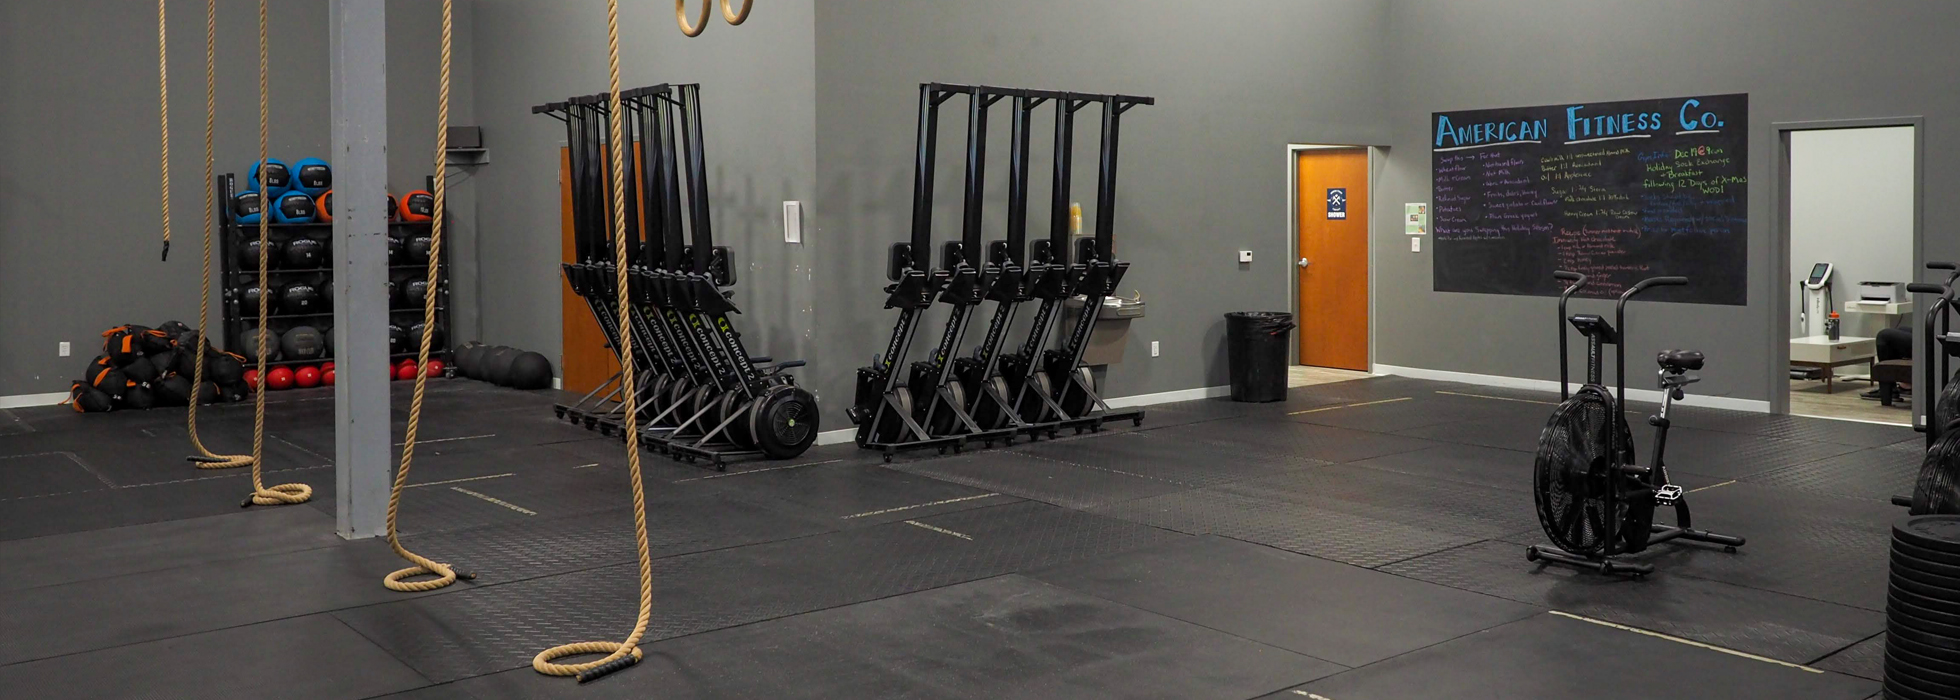 Workout Gym near Indianapolis IN, Workout Gym near Northwest Indianapolis IN, Workout Gym near Zionsville IN, Workout Gym near Carmel IN, Workout Gym near Whitestown IN